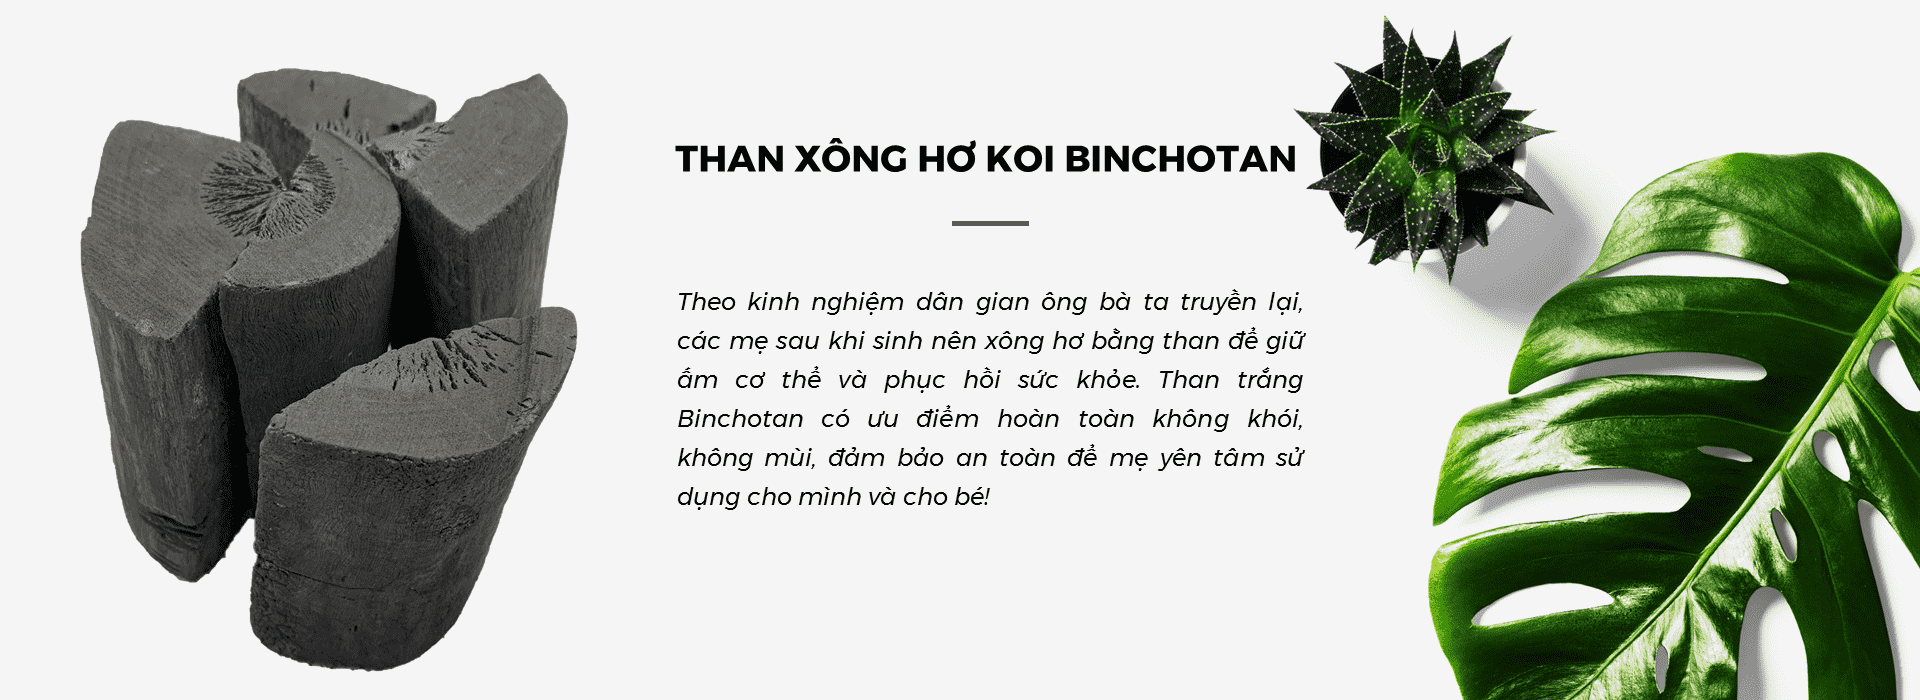 than xong ho